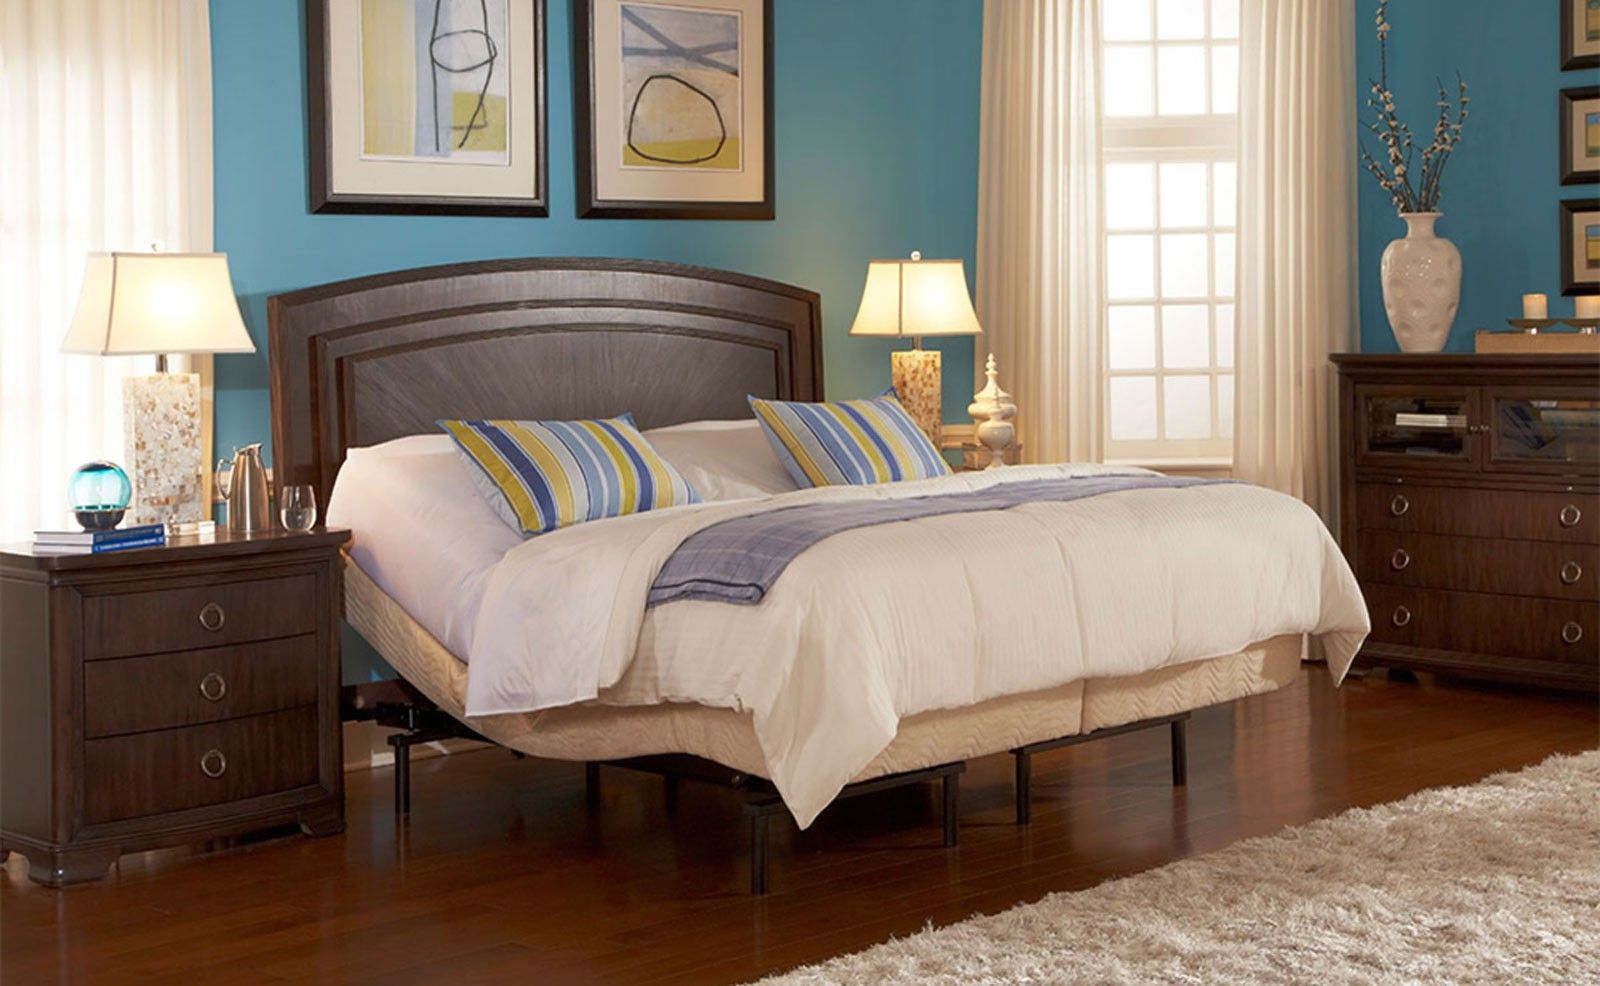 Bedroom Cute Ideas For Bedroom Decoration With Split King Adjustable Bed Frame Along With Curve Mahogany Wood Headboard And Blue Bedroom Wall Paint Simple   ...